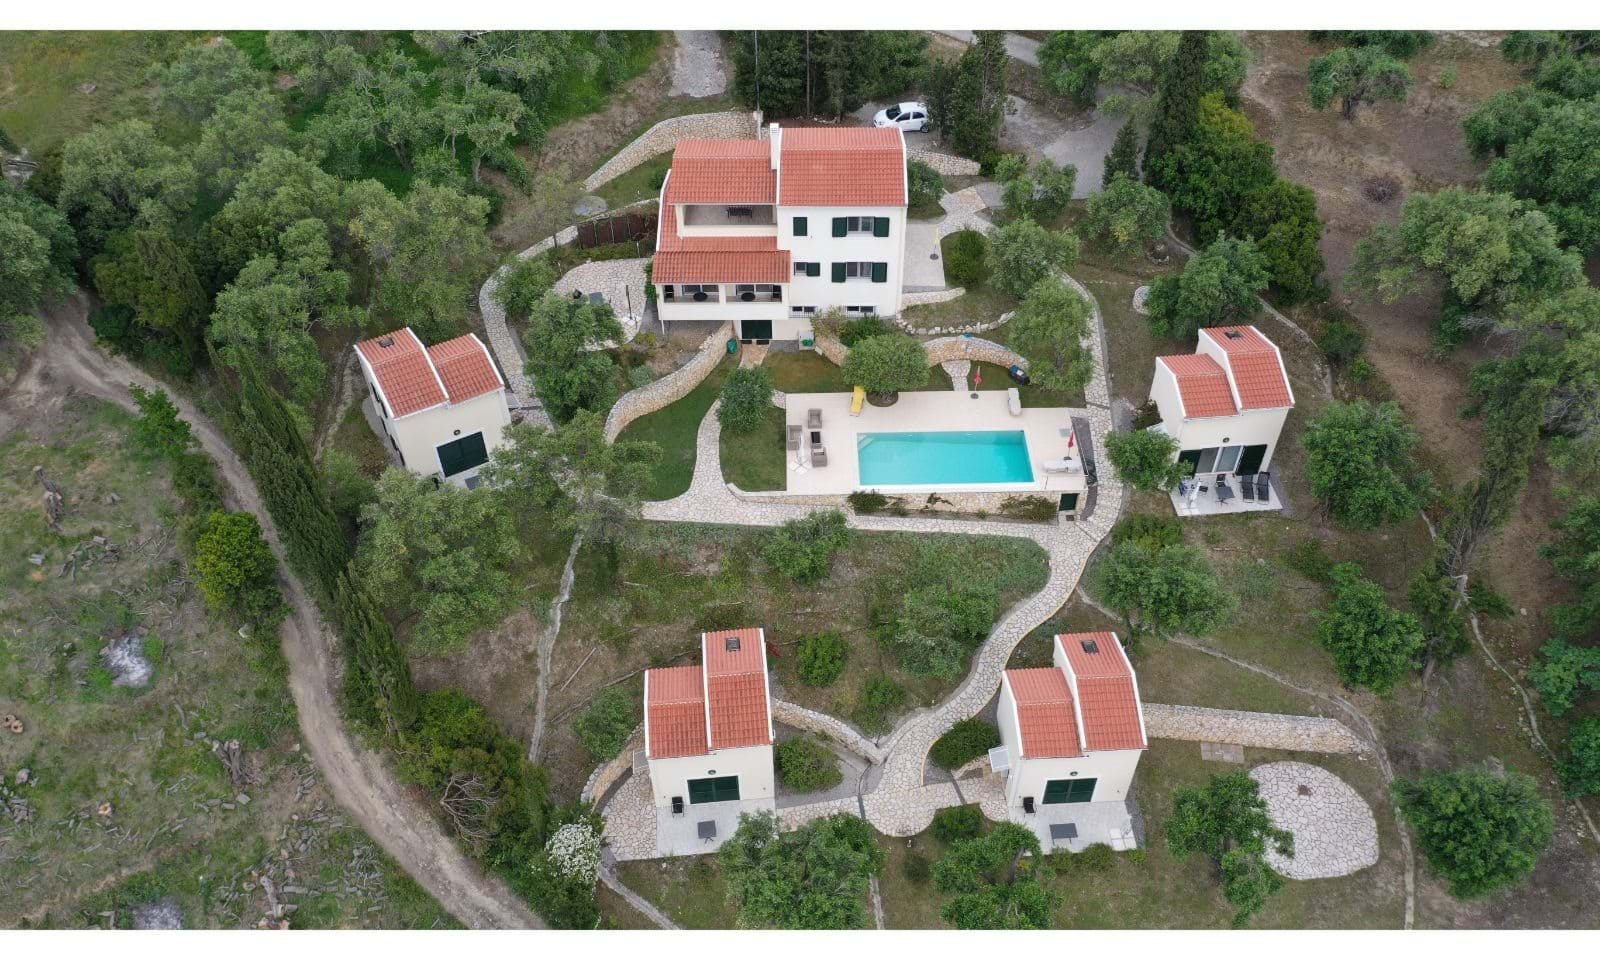 Aerial view of estate